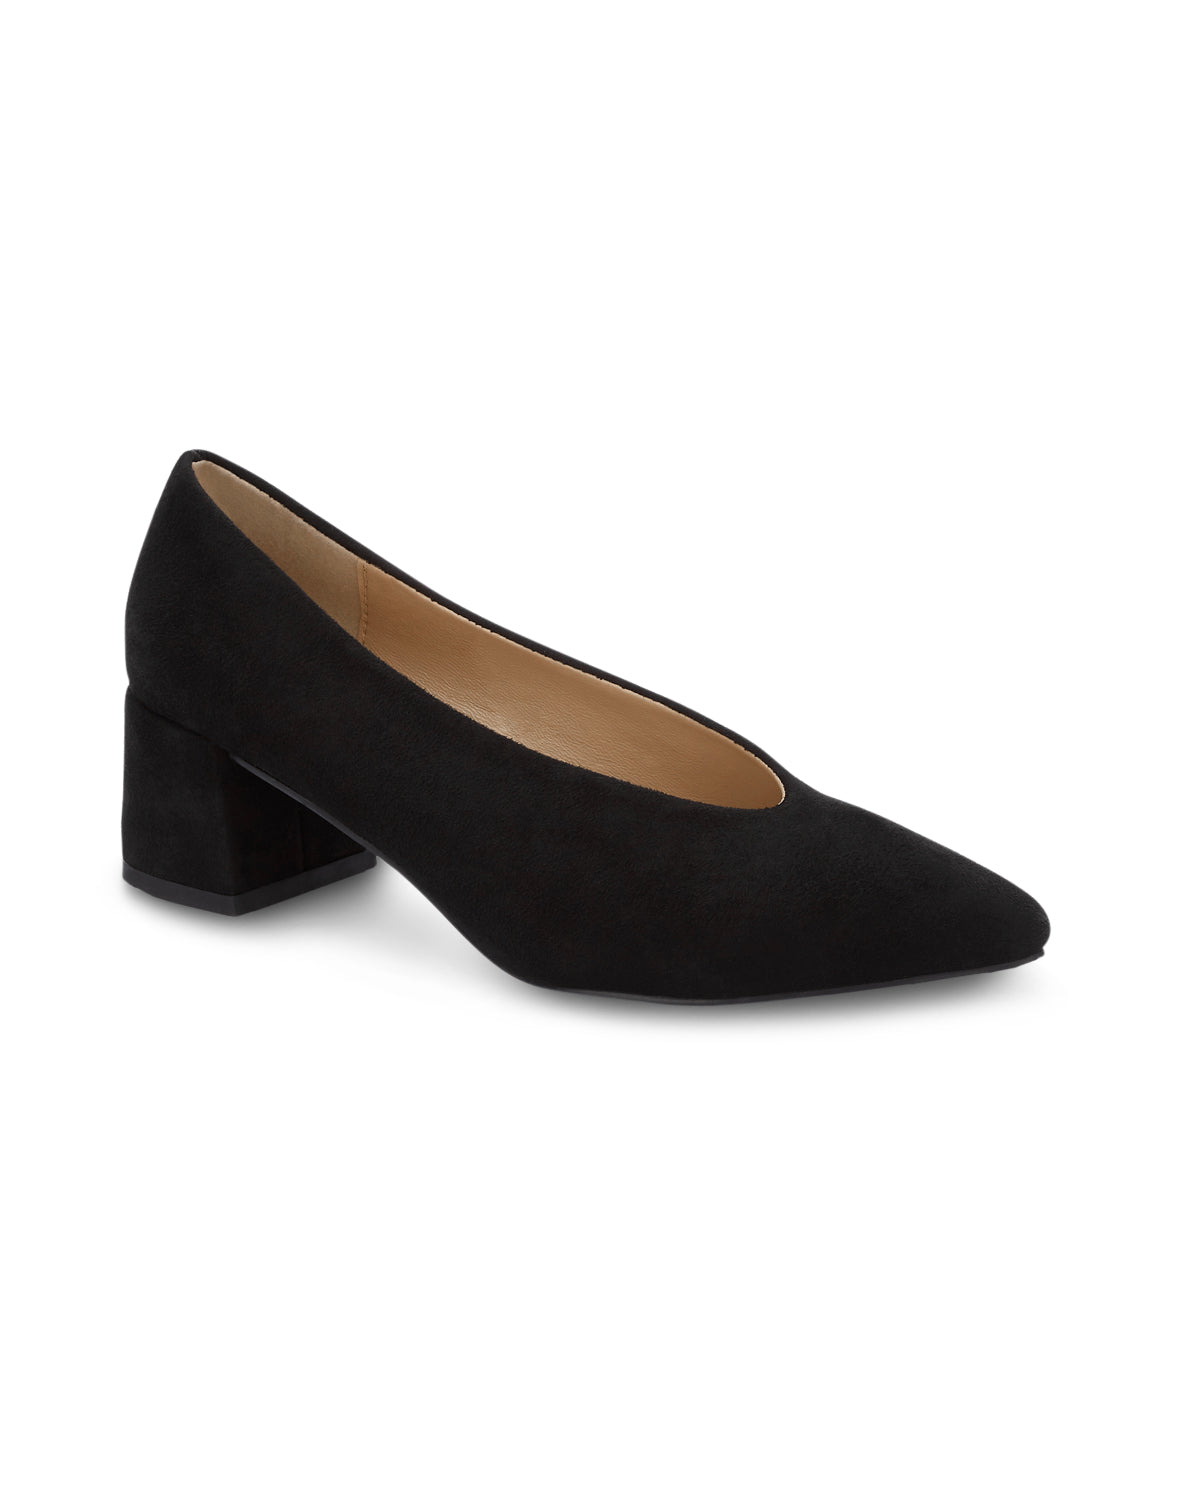 Berthe Black Pointed Toe Pumps